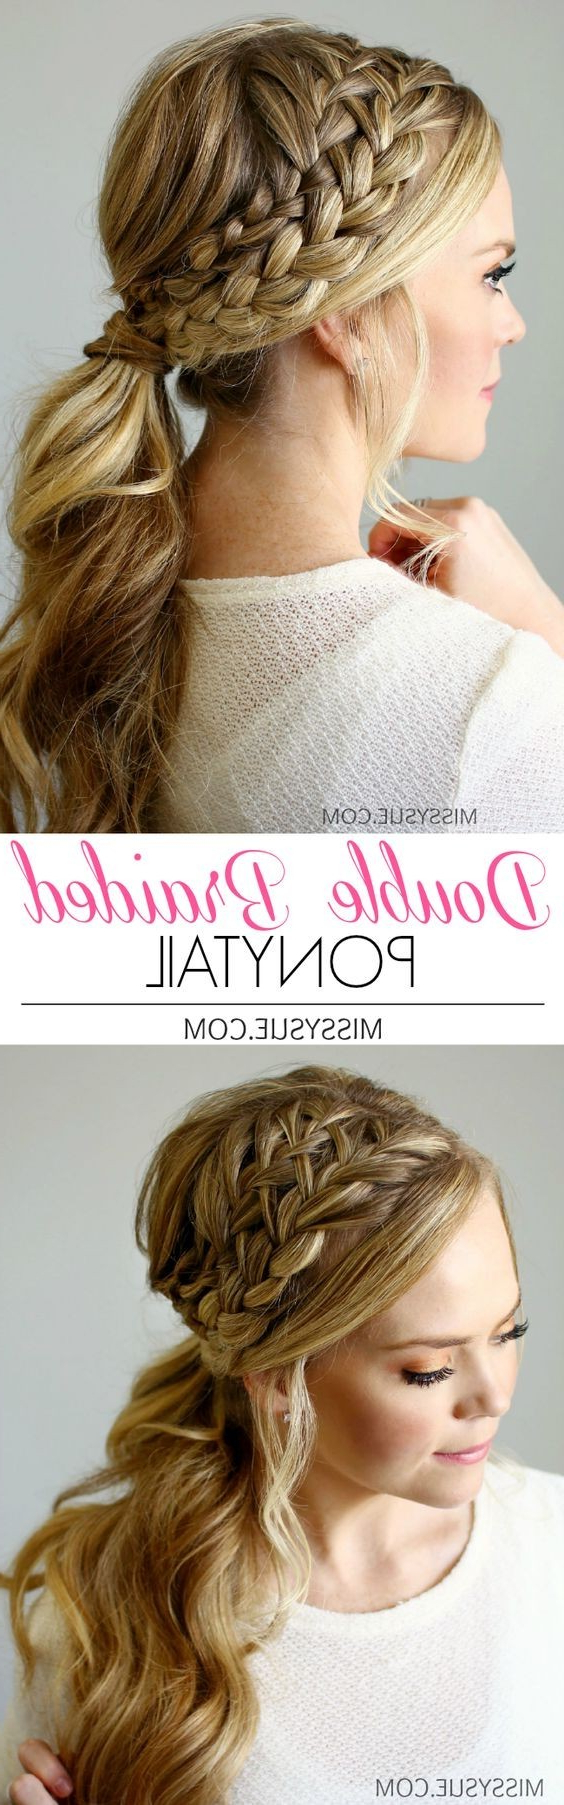 18 Cute Braided Ponytail Styles – Popular Haircuts Inside Popular Textured Side Braid And Ponytail Prom Hairstyles (Gallery 8 of 20)